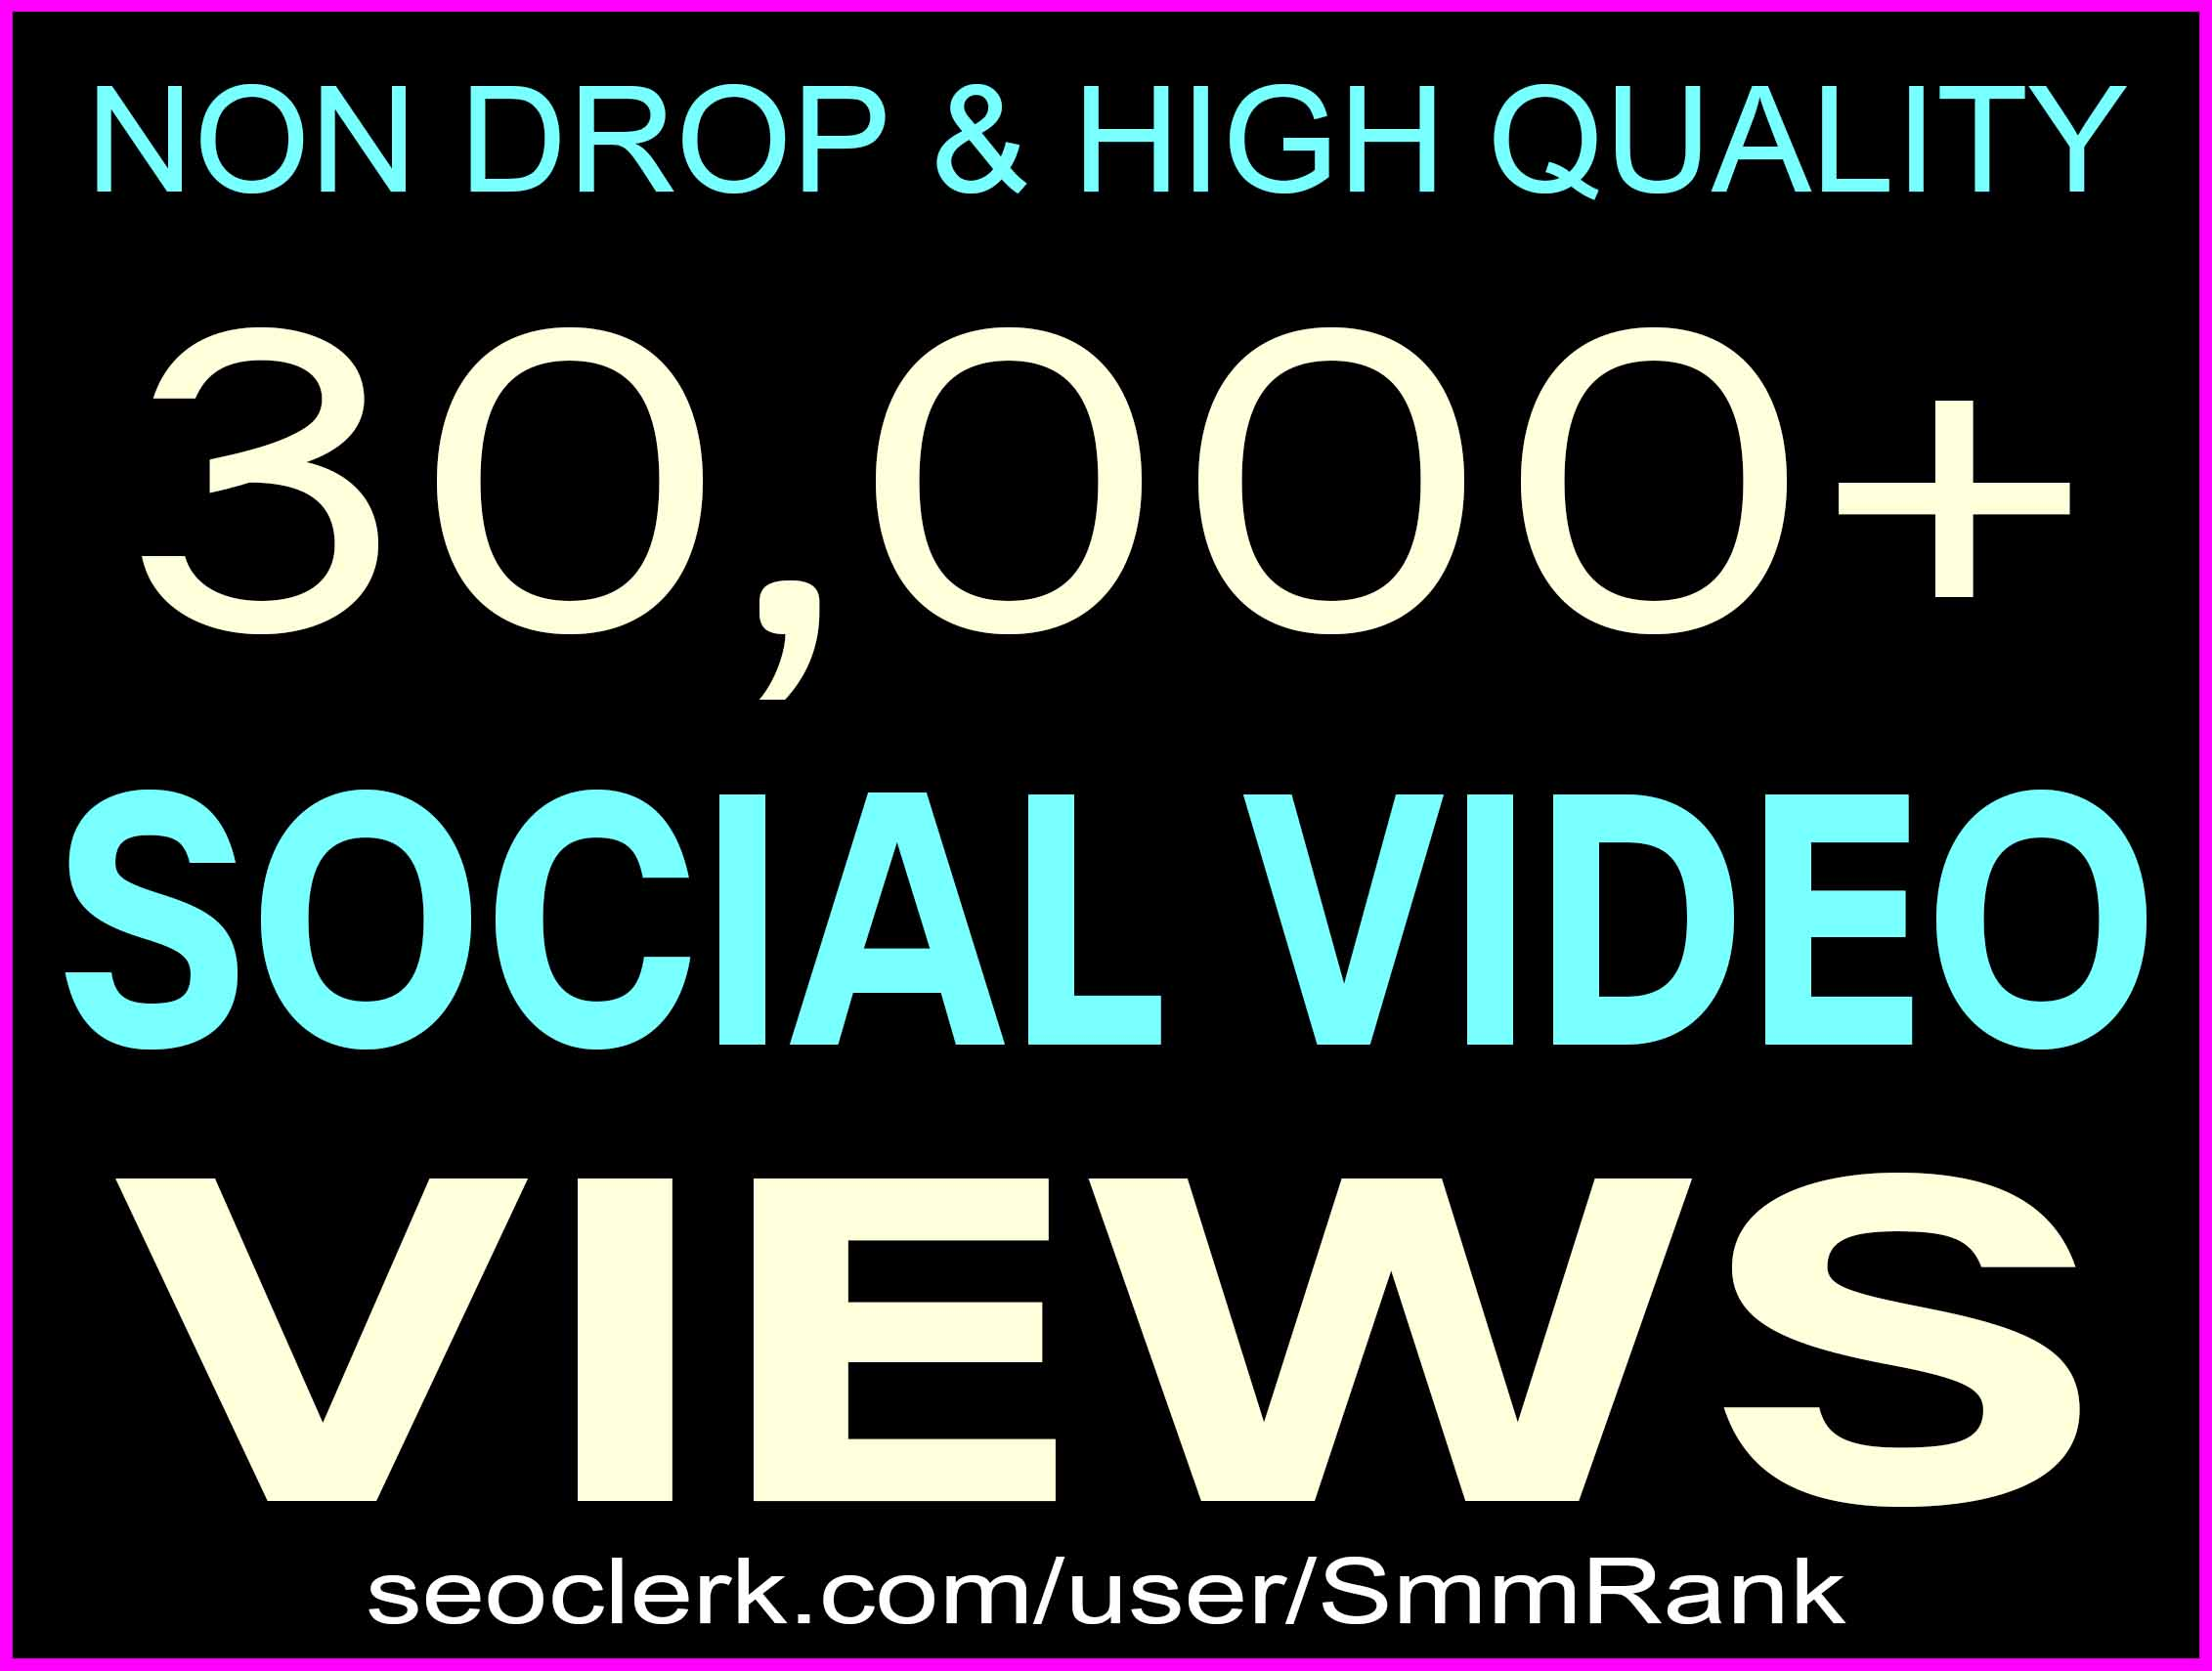 30,000+ SOCIAL VIDEO VIEWS SUPER FAST AND HIGH QUALITY WITH NON DROP GUARANTEED